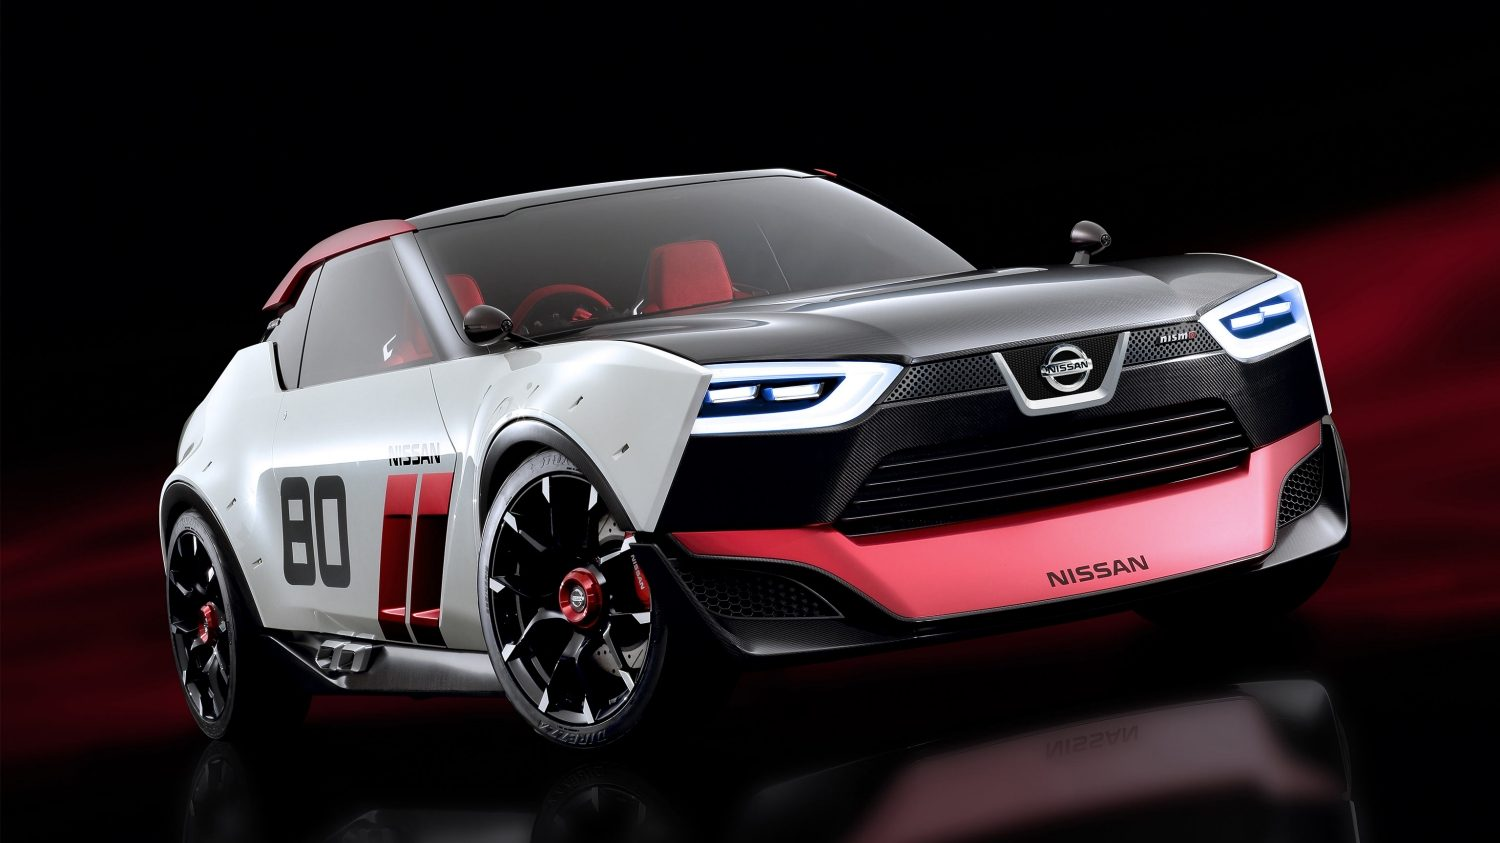 Nissan IDX NISMO Concept. Gallery low 3/4 front.